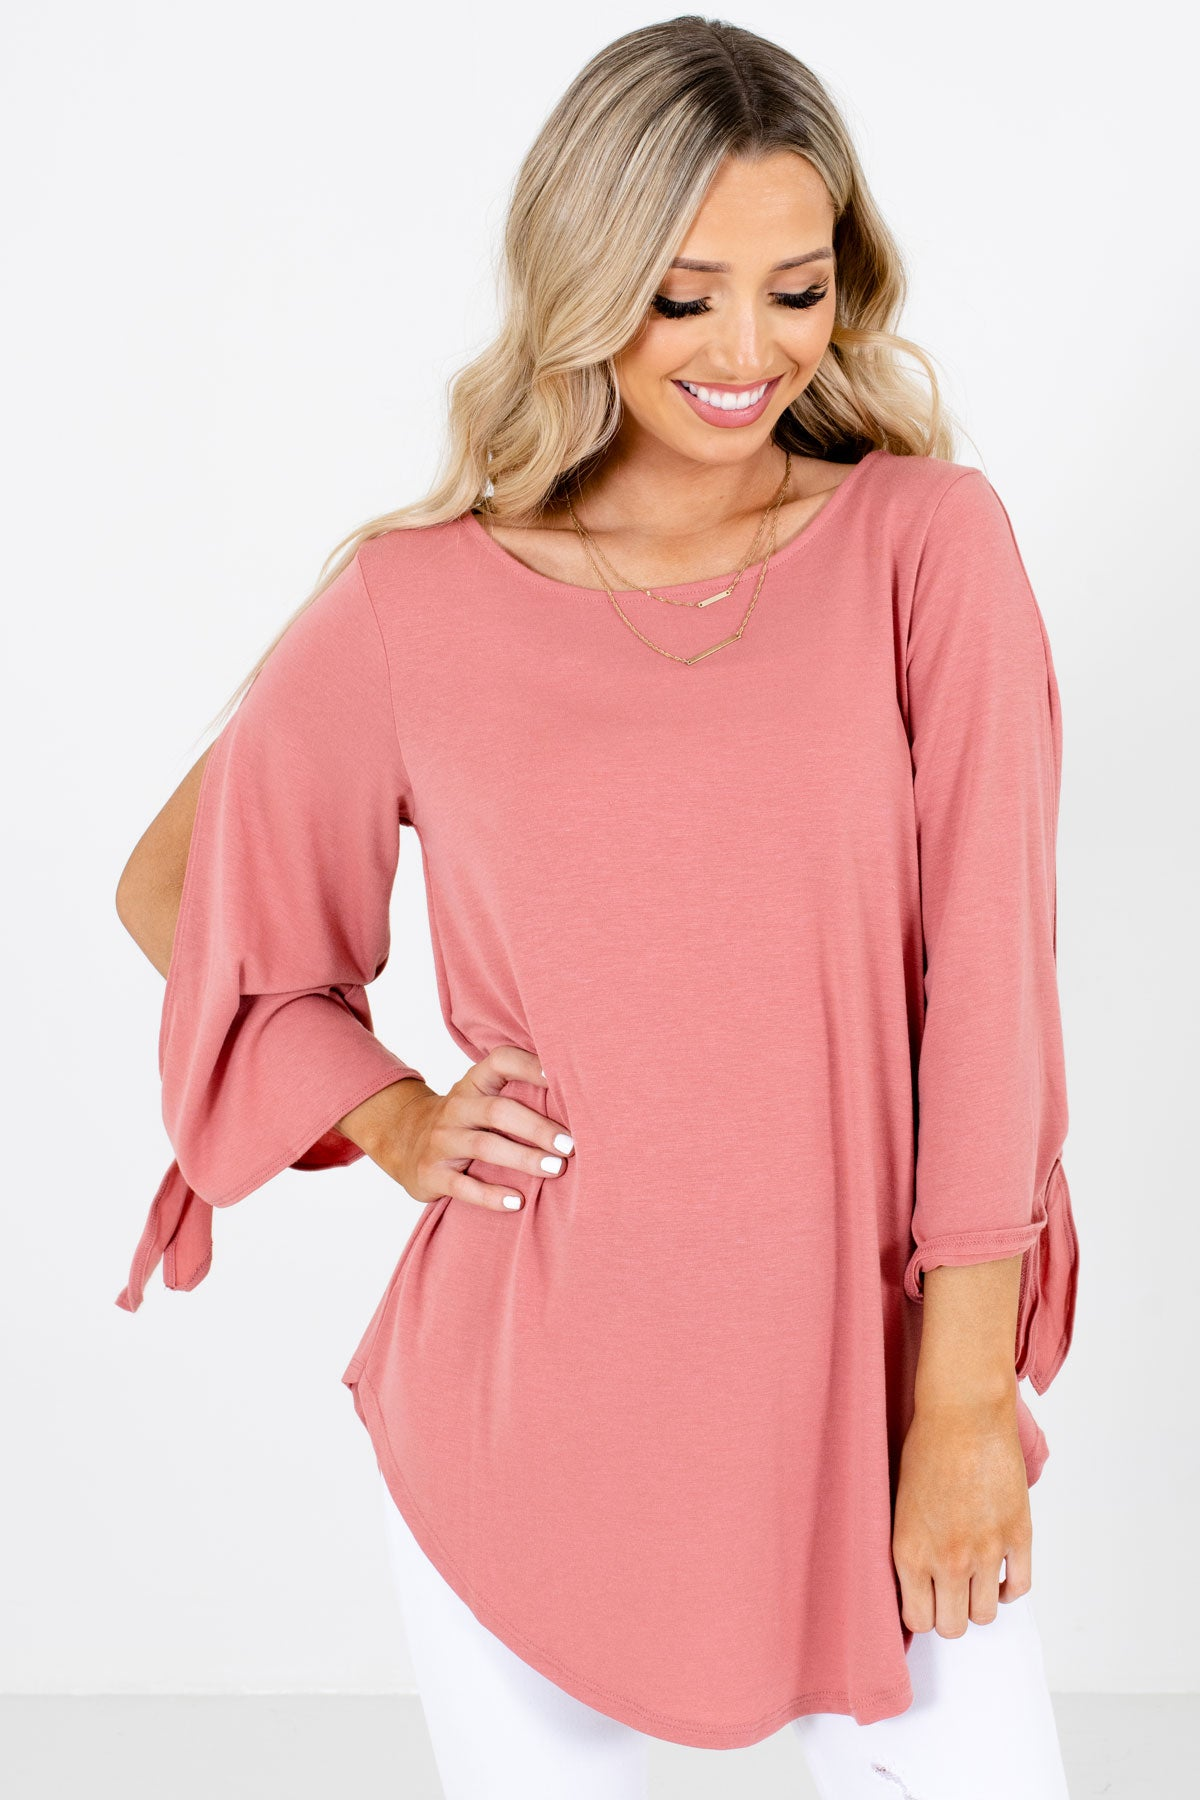 Pink Split Sleeve Boutique Blouses for Women